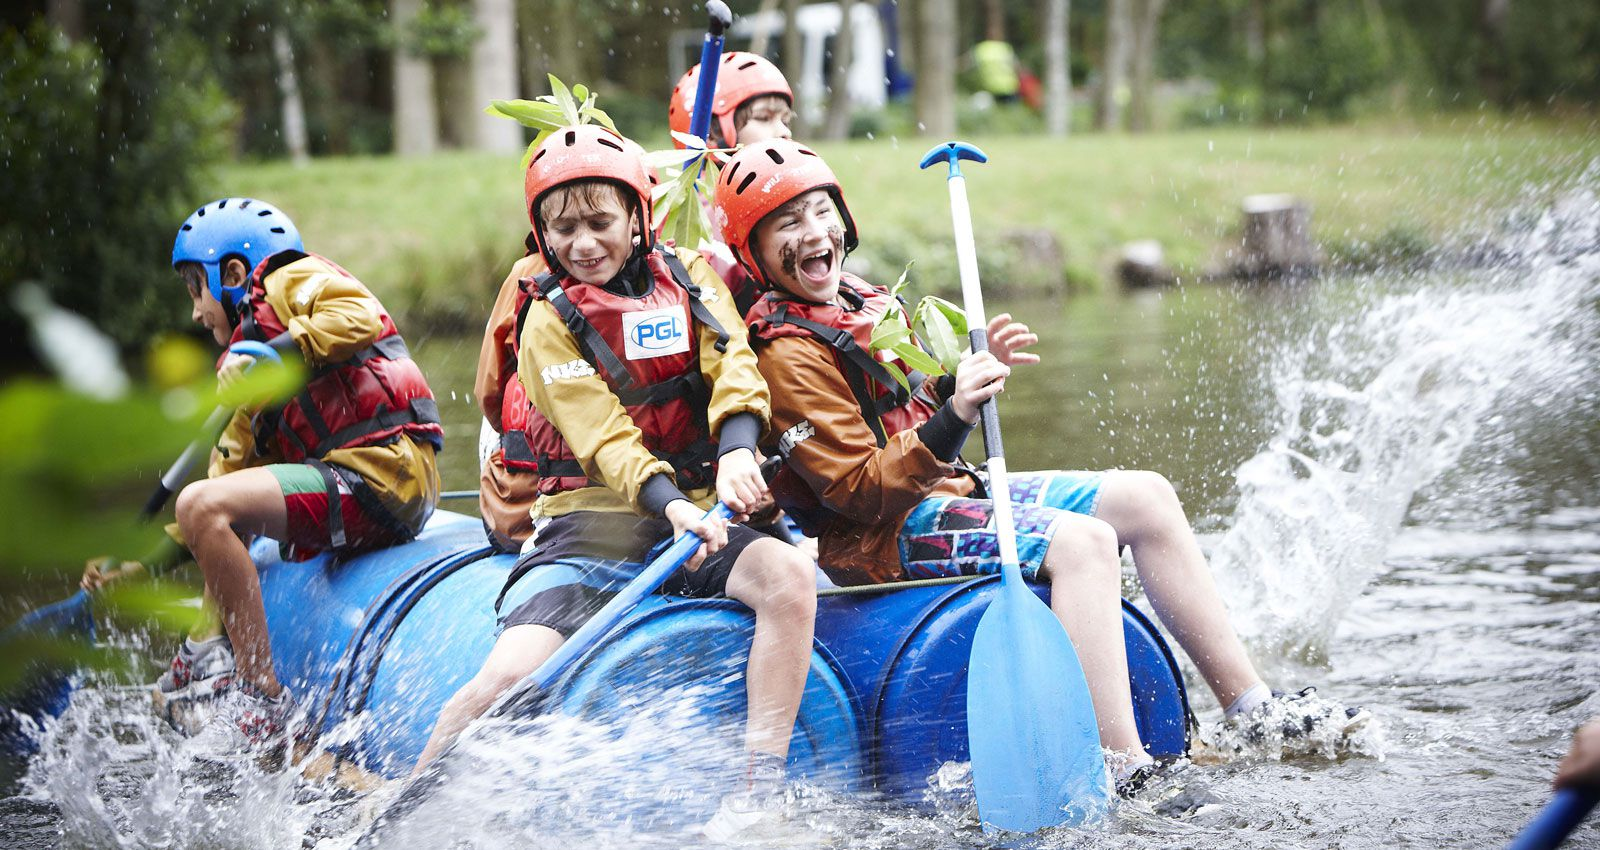 Multi Activity 7 night Adventure Holidays for 7-17 year olds in the UK